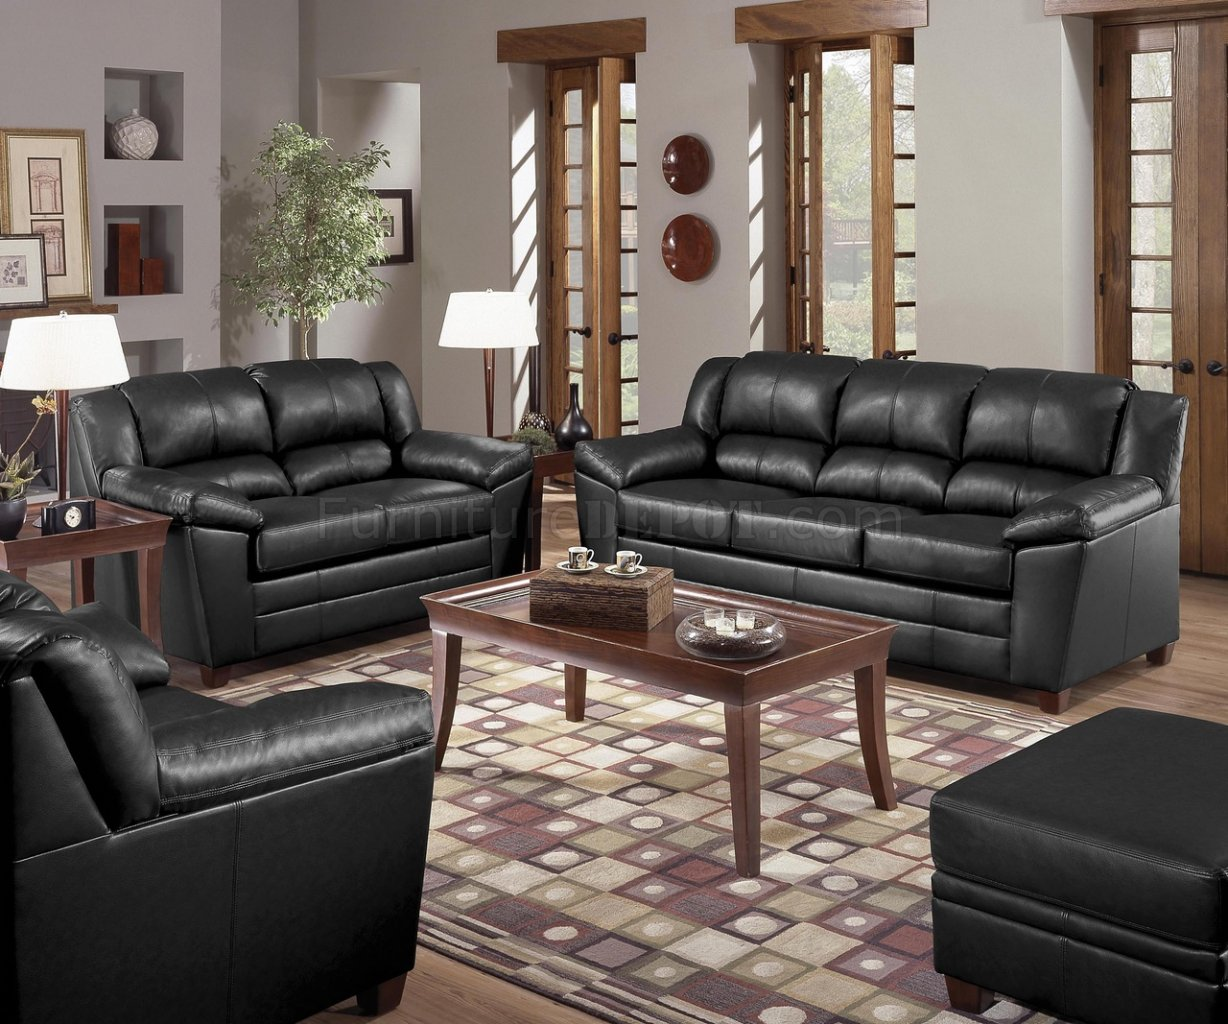 Black Bonded Leather Living Room W Baseball Stitch Seams